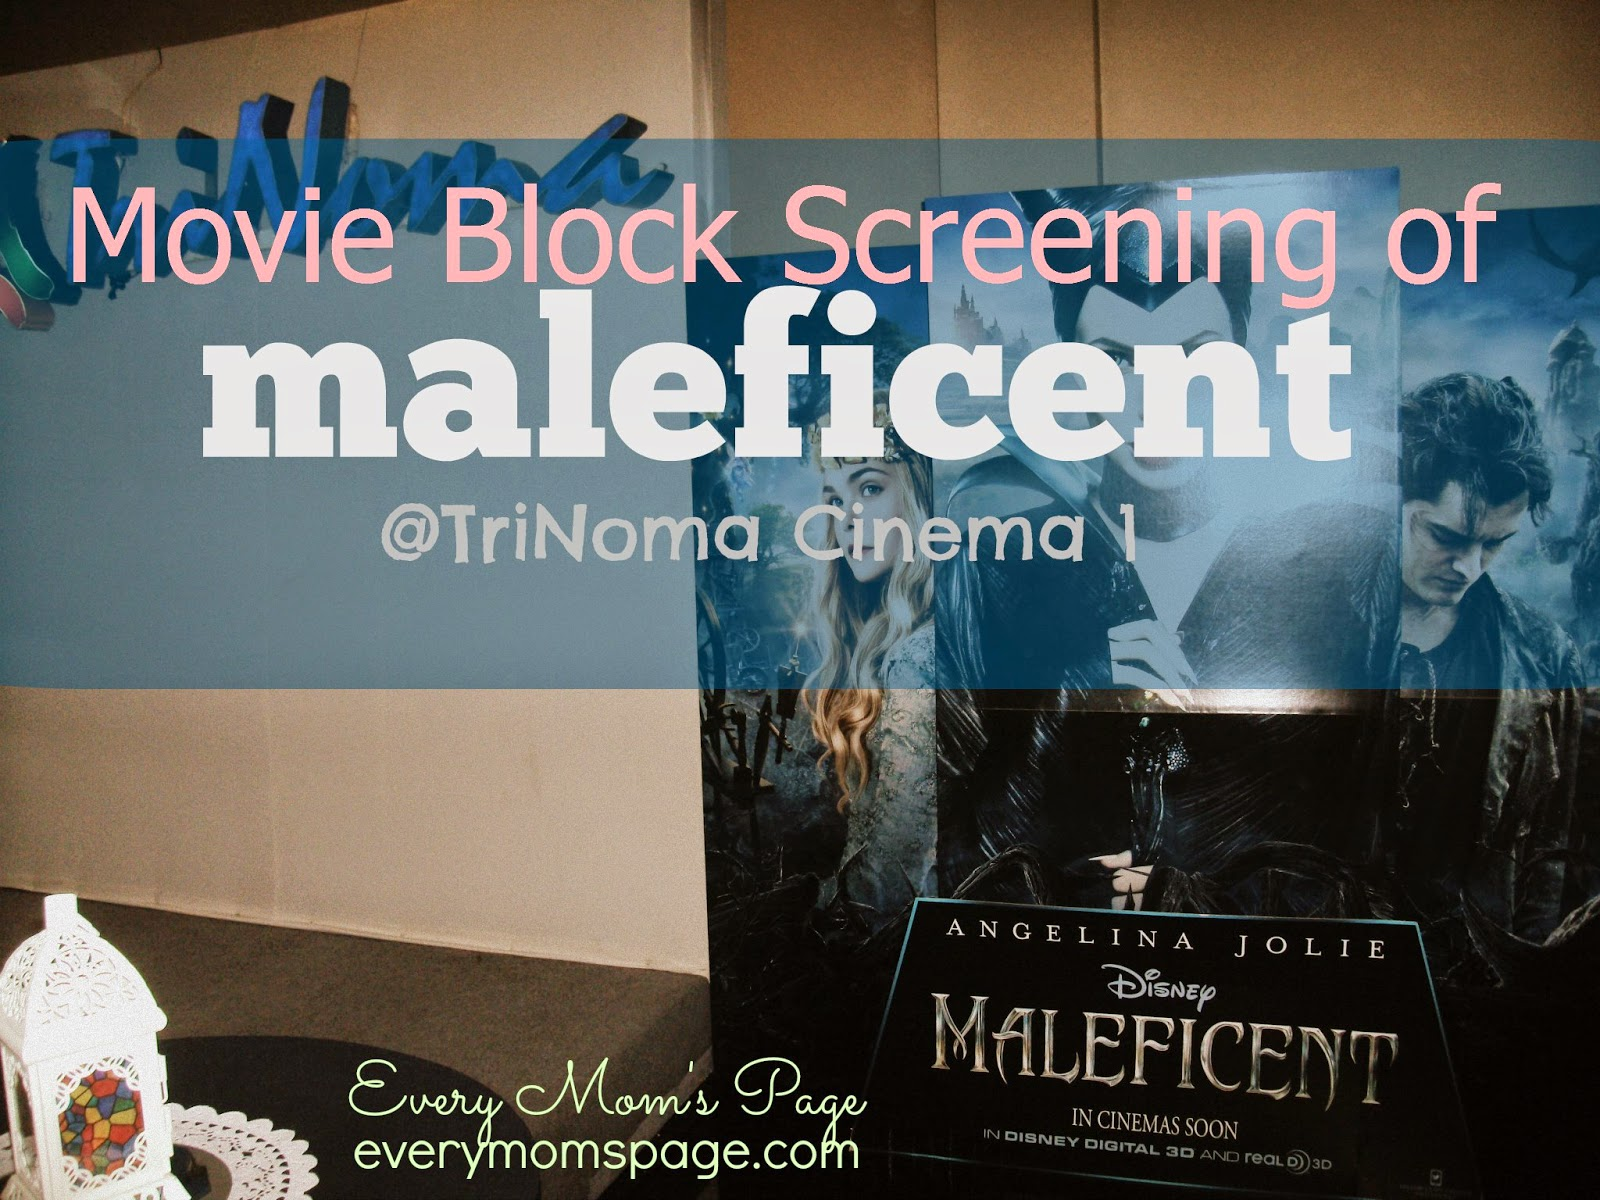 Everymomspage my movie experience maleficent trinoma cinema1 last thursday i was invited to the block screening of much waited movie maleficent in trinoma cinema1 i have been looking forward for this disney movie stopboris Gallery